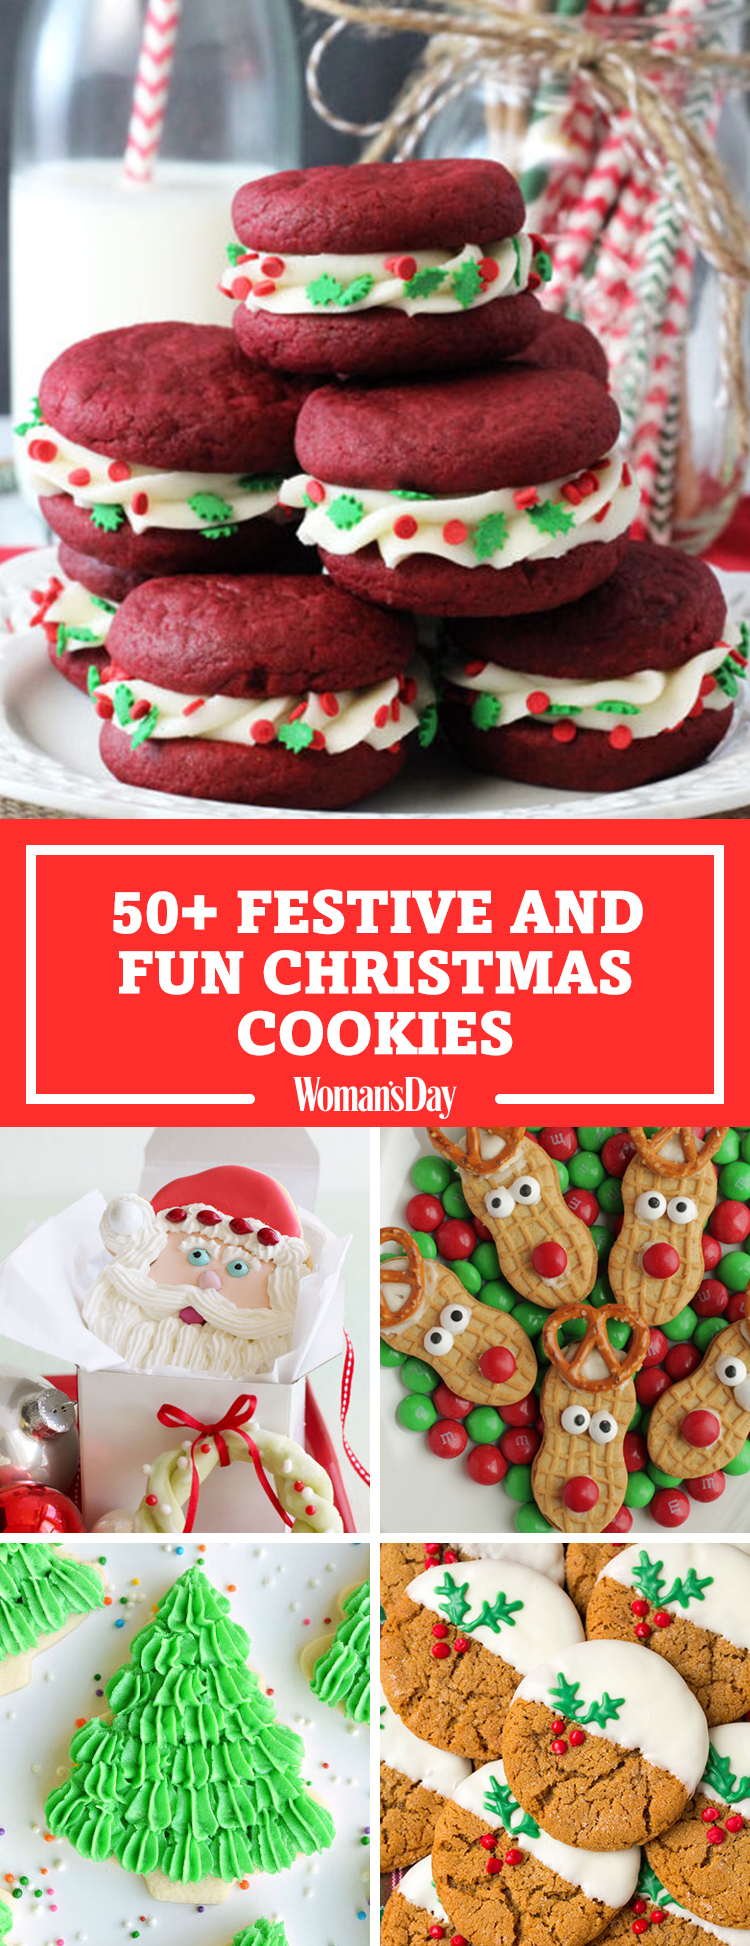 59 Easy Christmas Cookies - Best Recipes for Holiday ...